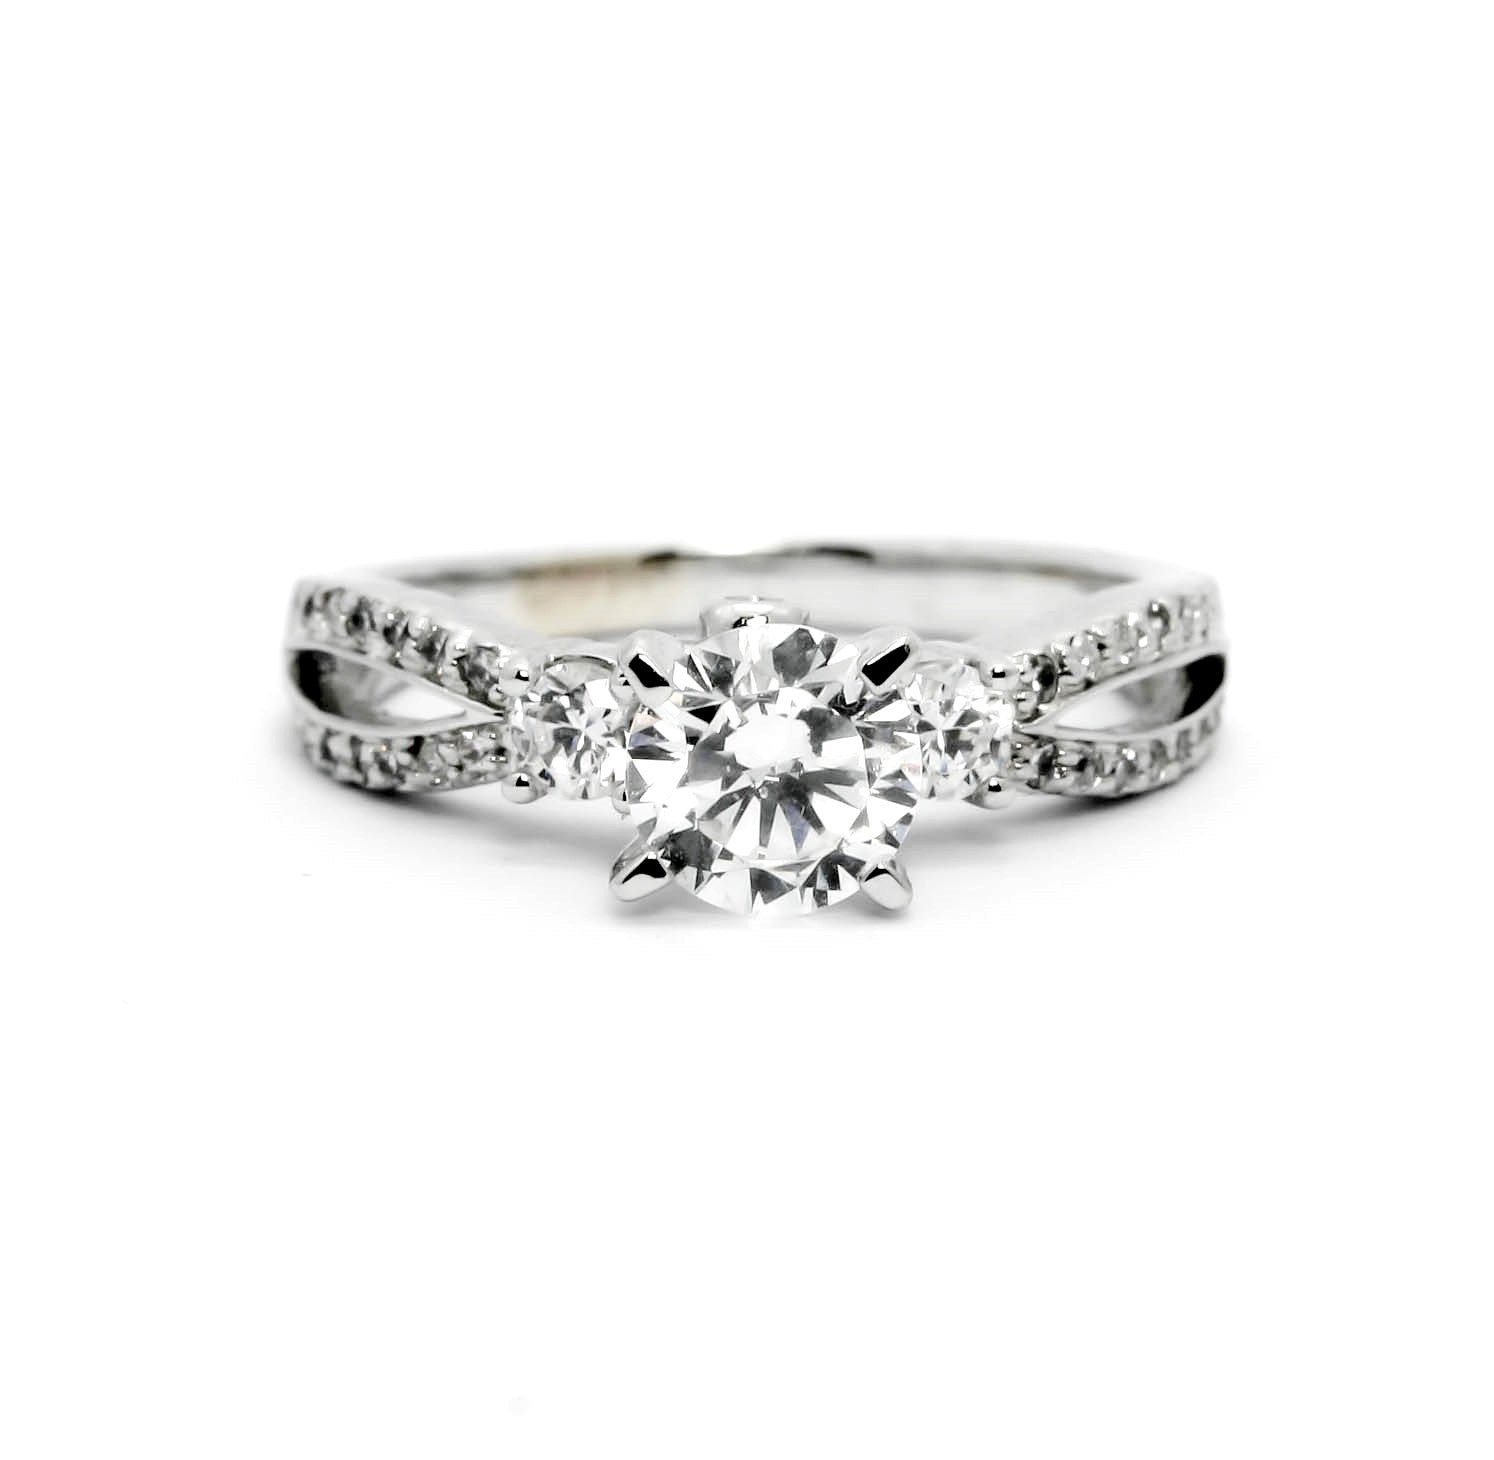 Moissanite Engagement Ring,  Unique 1 Carat Forever Brilliant Moissanite Center Stone, Solitaire, Split Shank, Anniversary Ring - FB76306